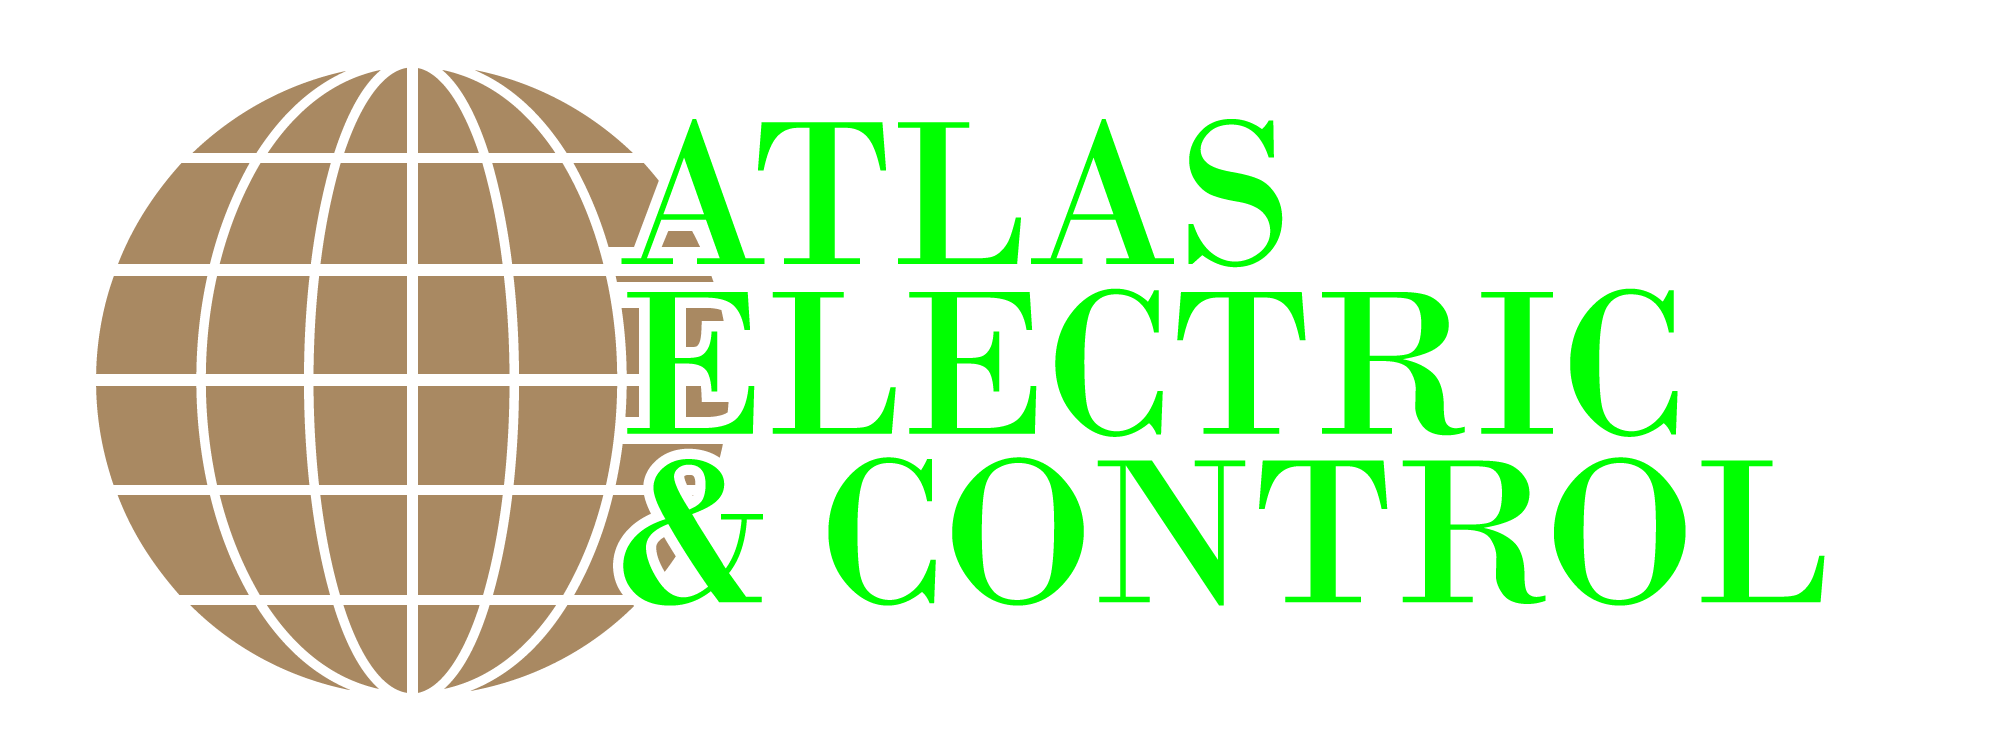 Atlas-Electric-&-Control-(#1).png